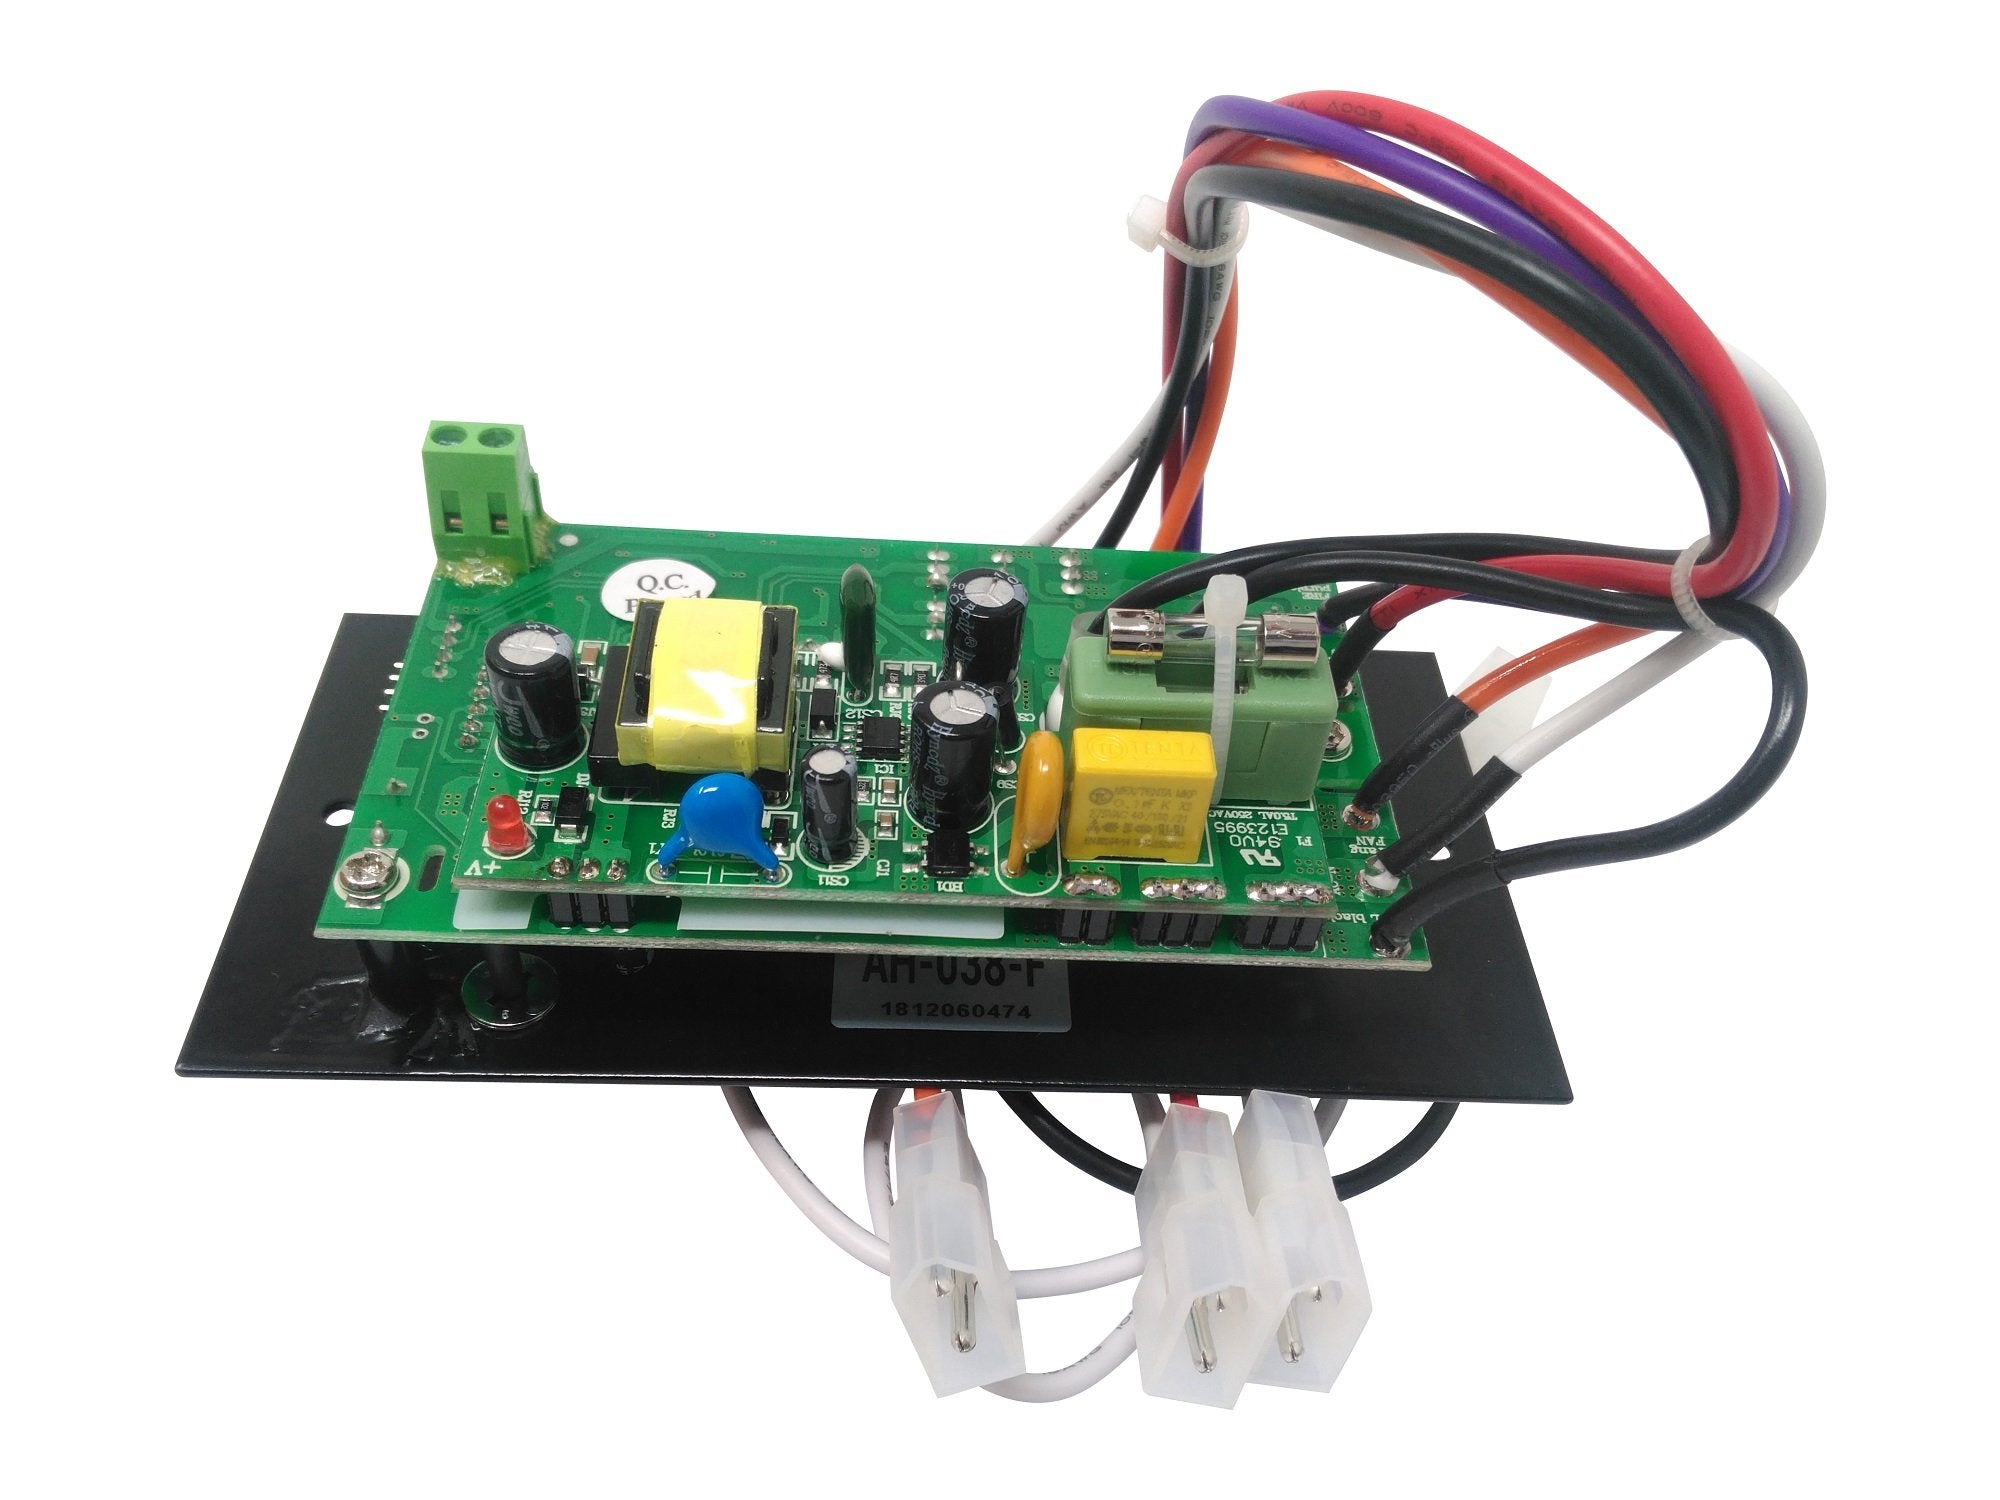 Traeger Digital Thermostat Control Board For Many Models